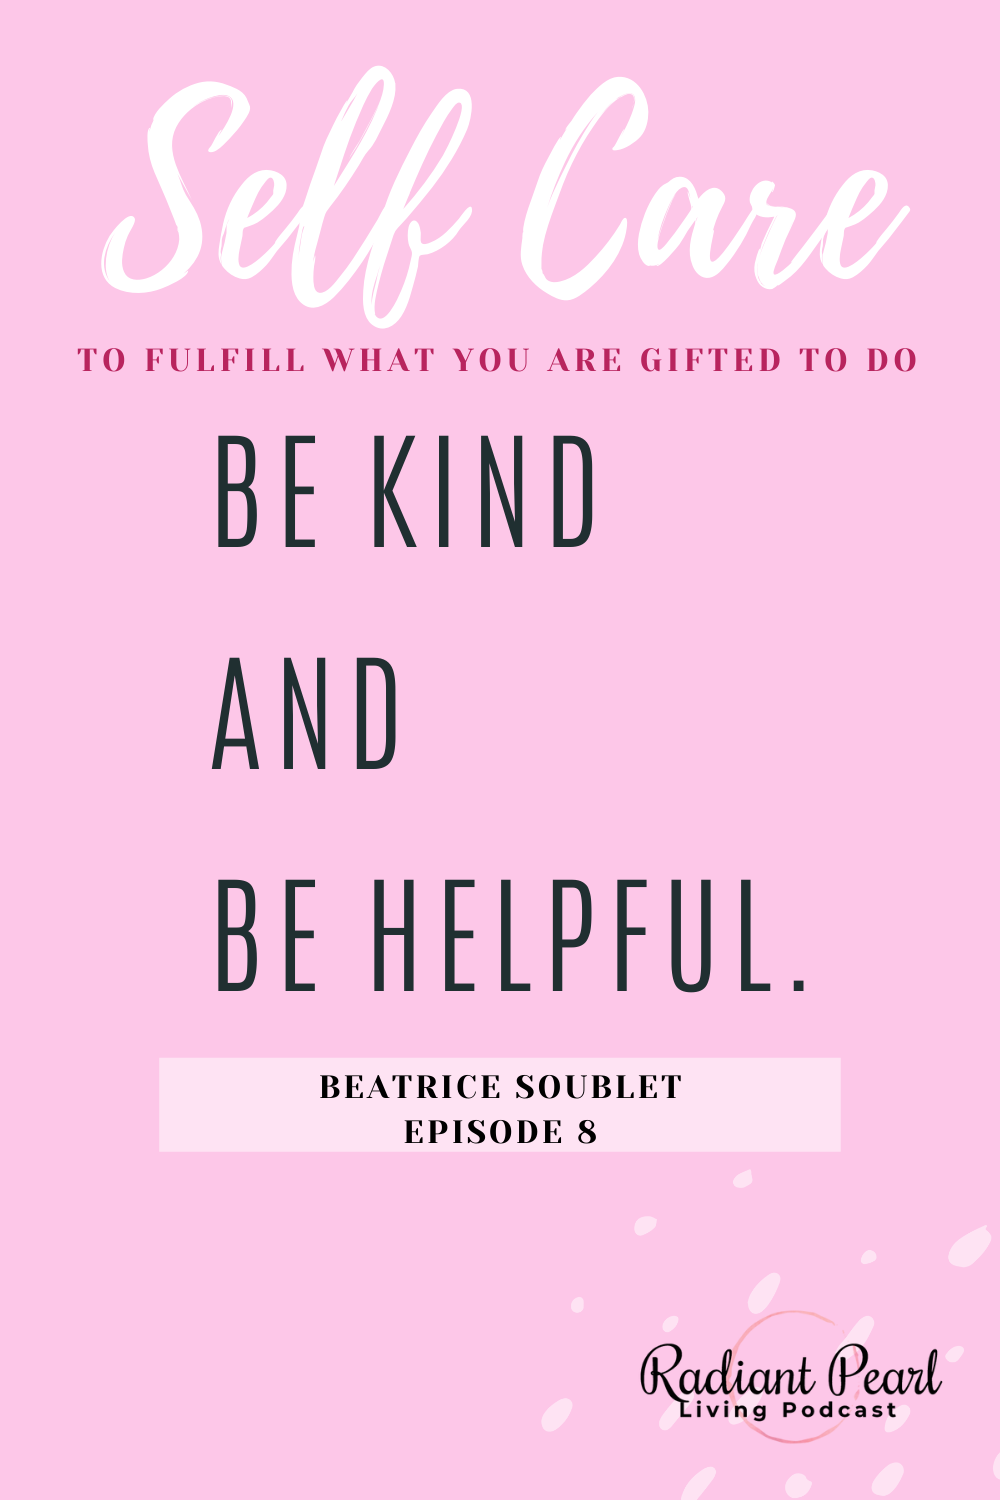 Episode 8 Pin of Quote from Philanthropist and Poet Beatrice Soublet. She shares The Importance of Service, Self-Care to better care for others and making yourself available to fulfill what you are gifted to do.